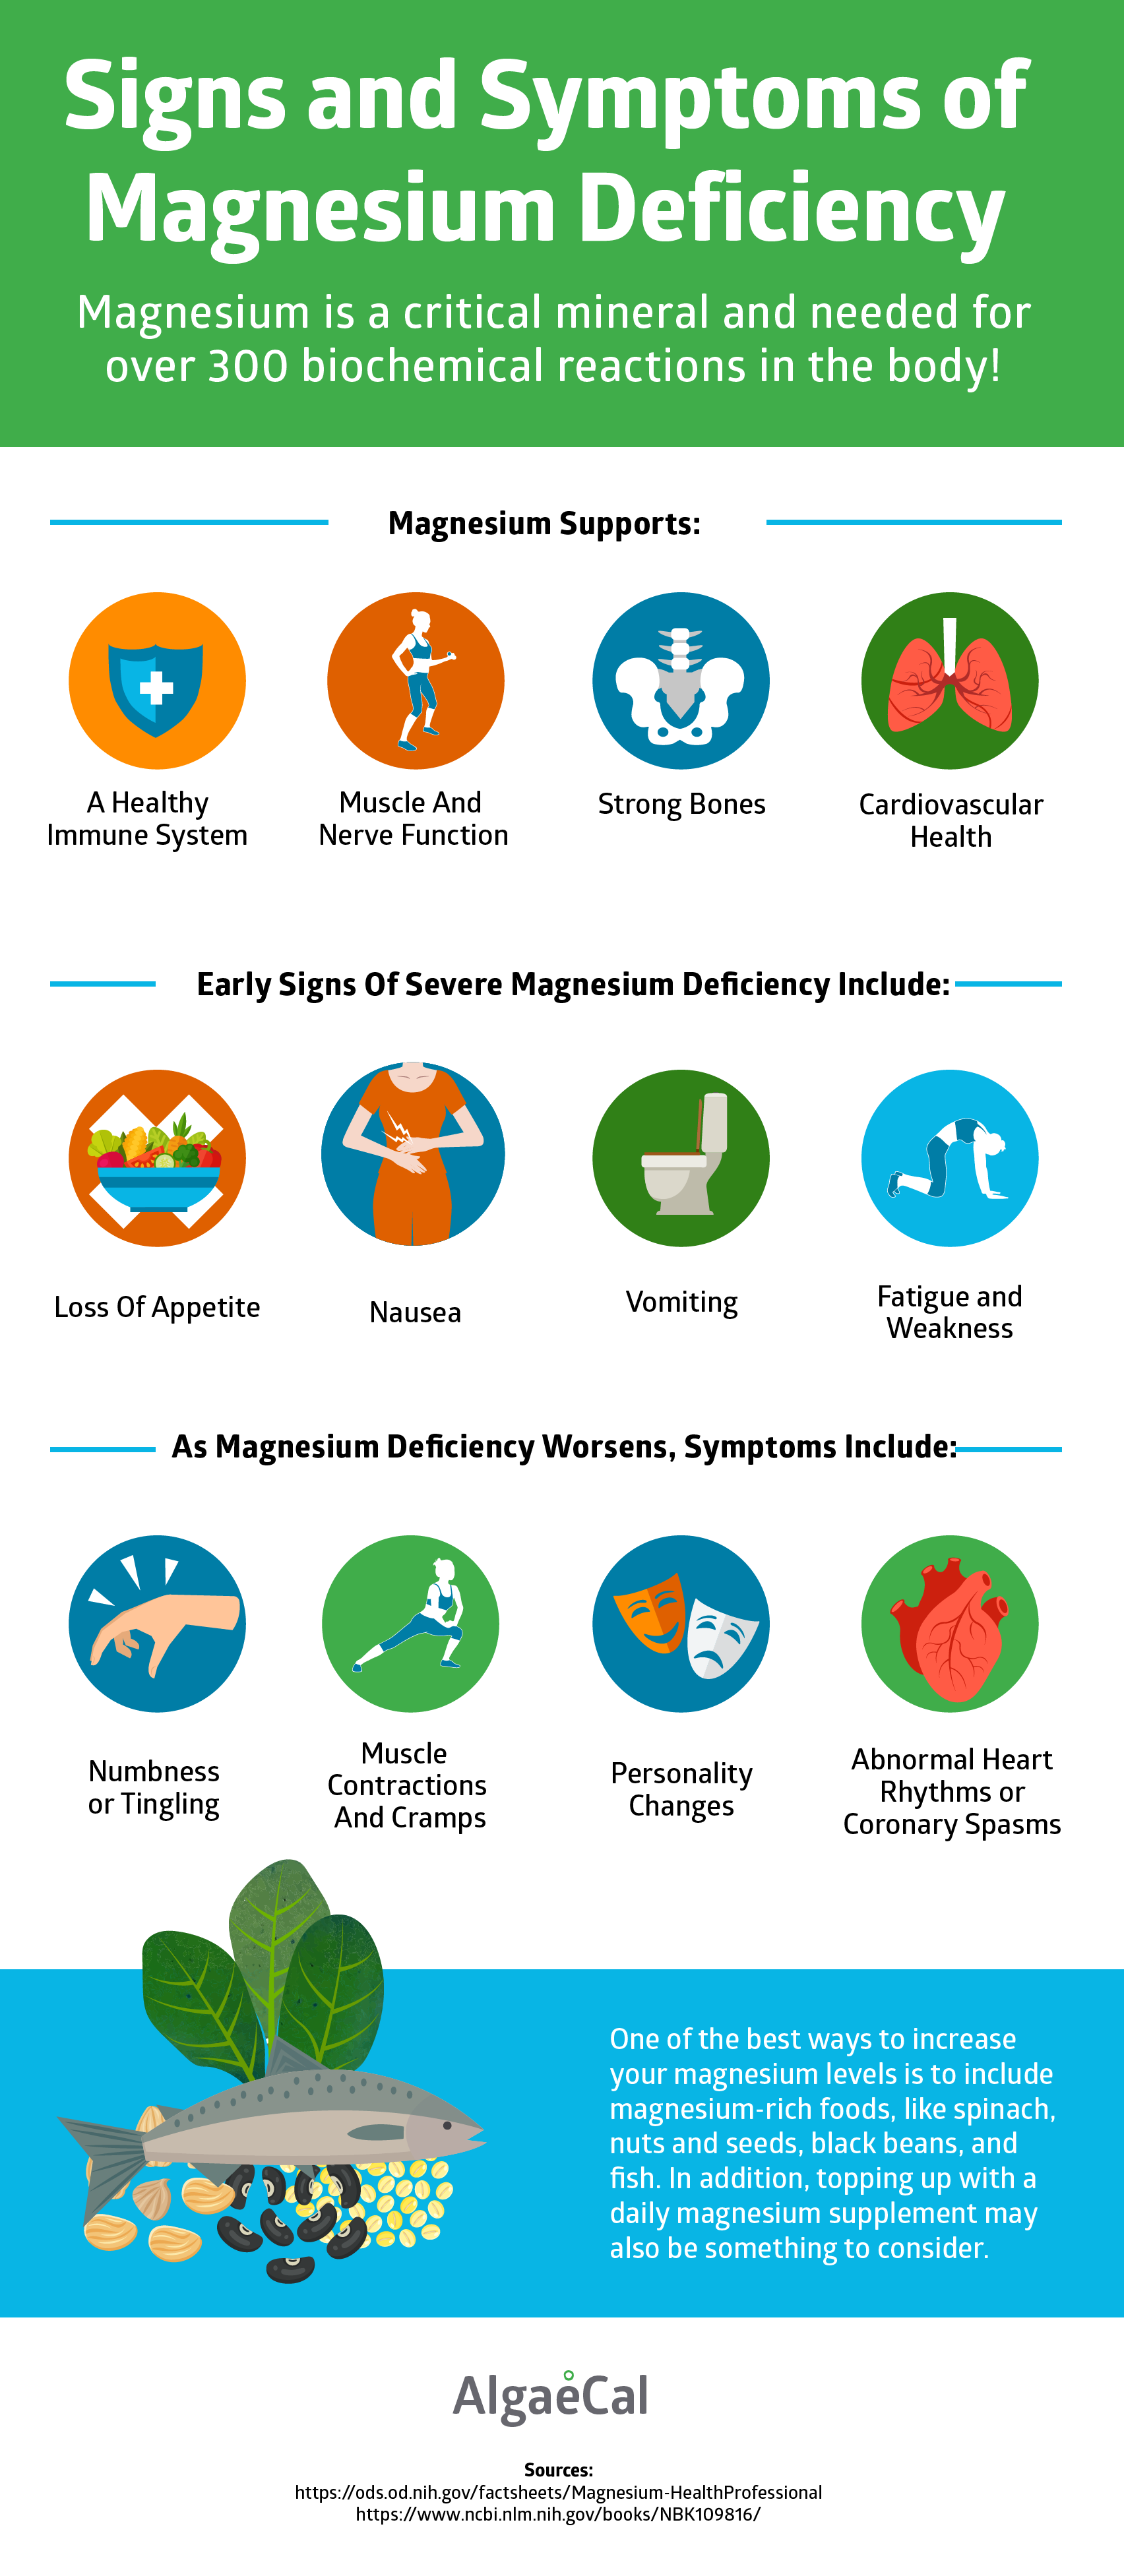 Signs and symptoms of magnesium deficiency